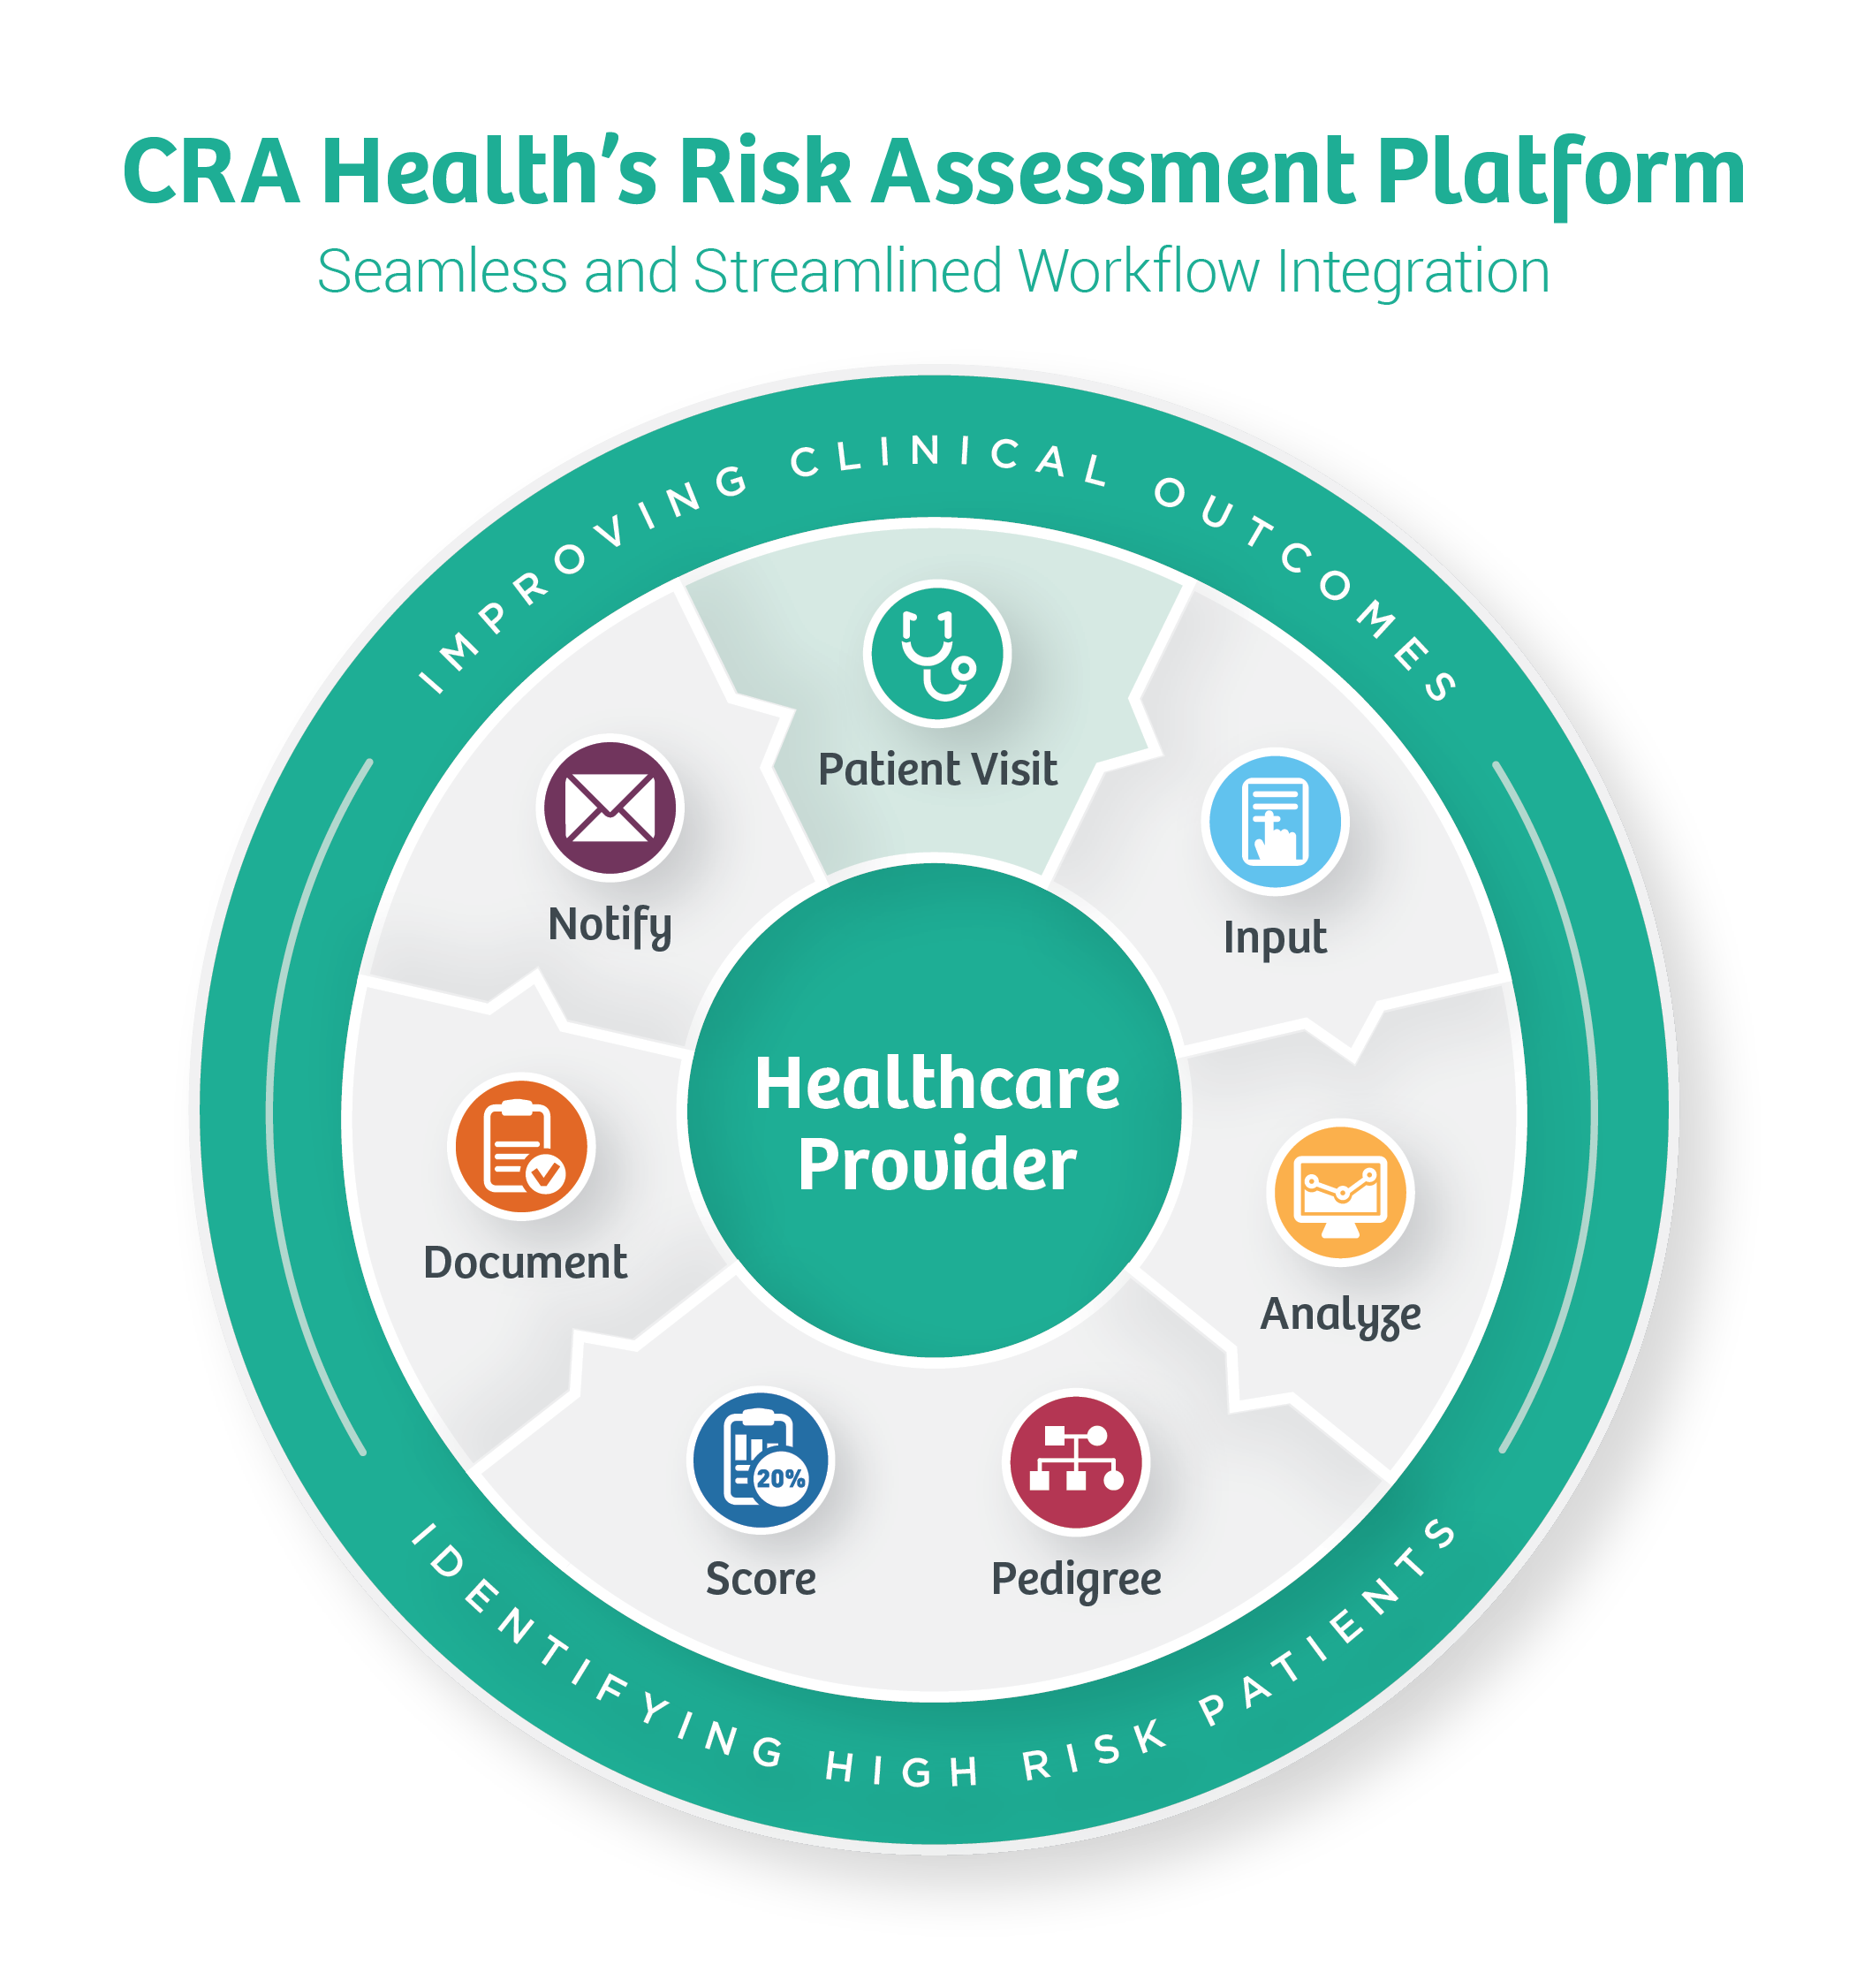 CRA-Infographic-NoHeader-Green.png